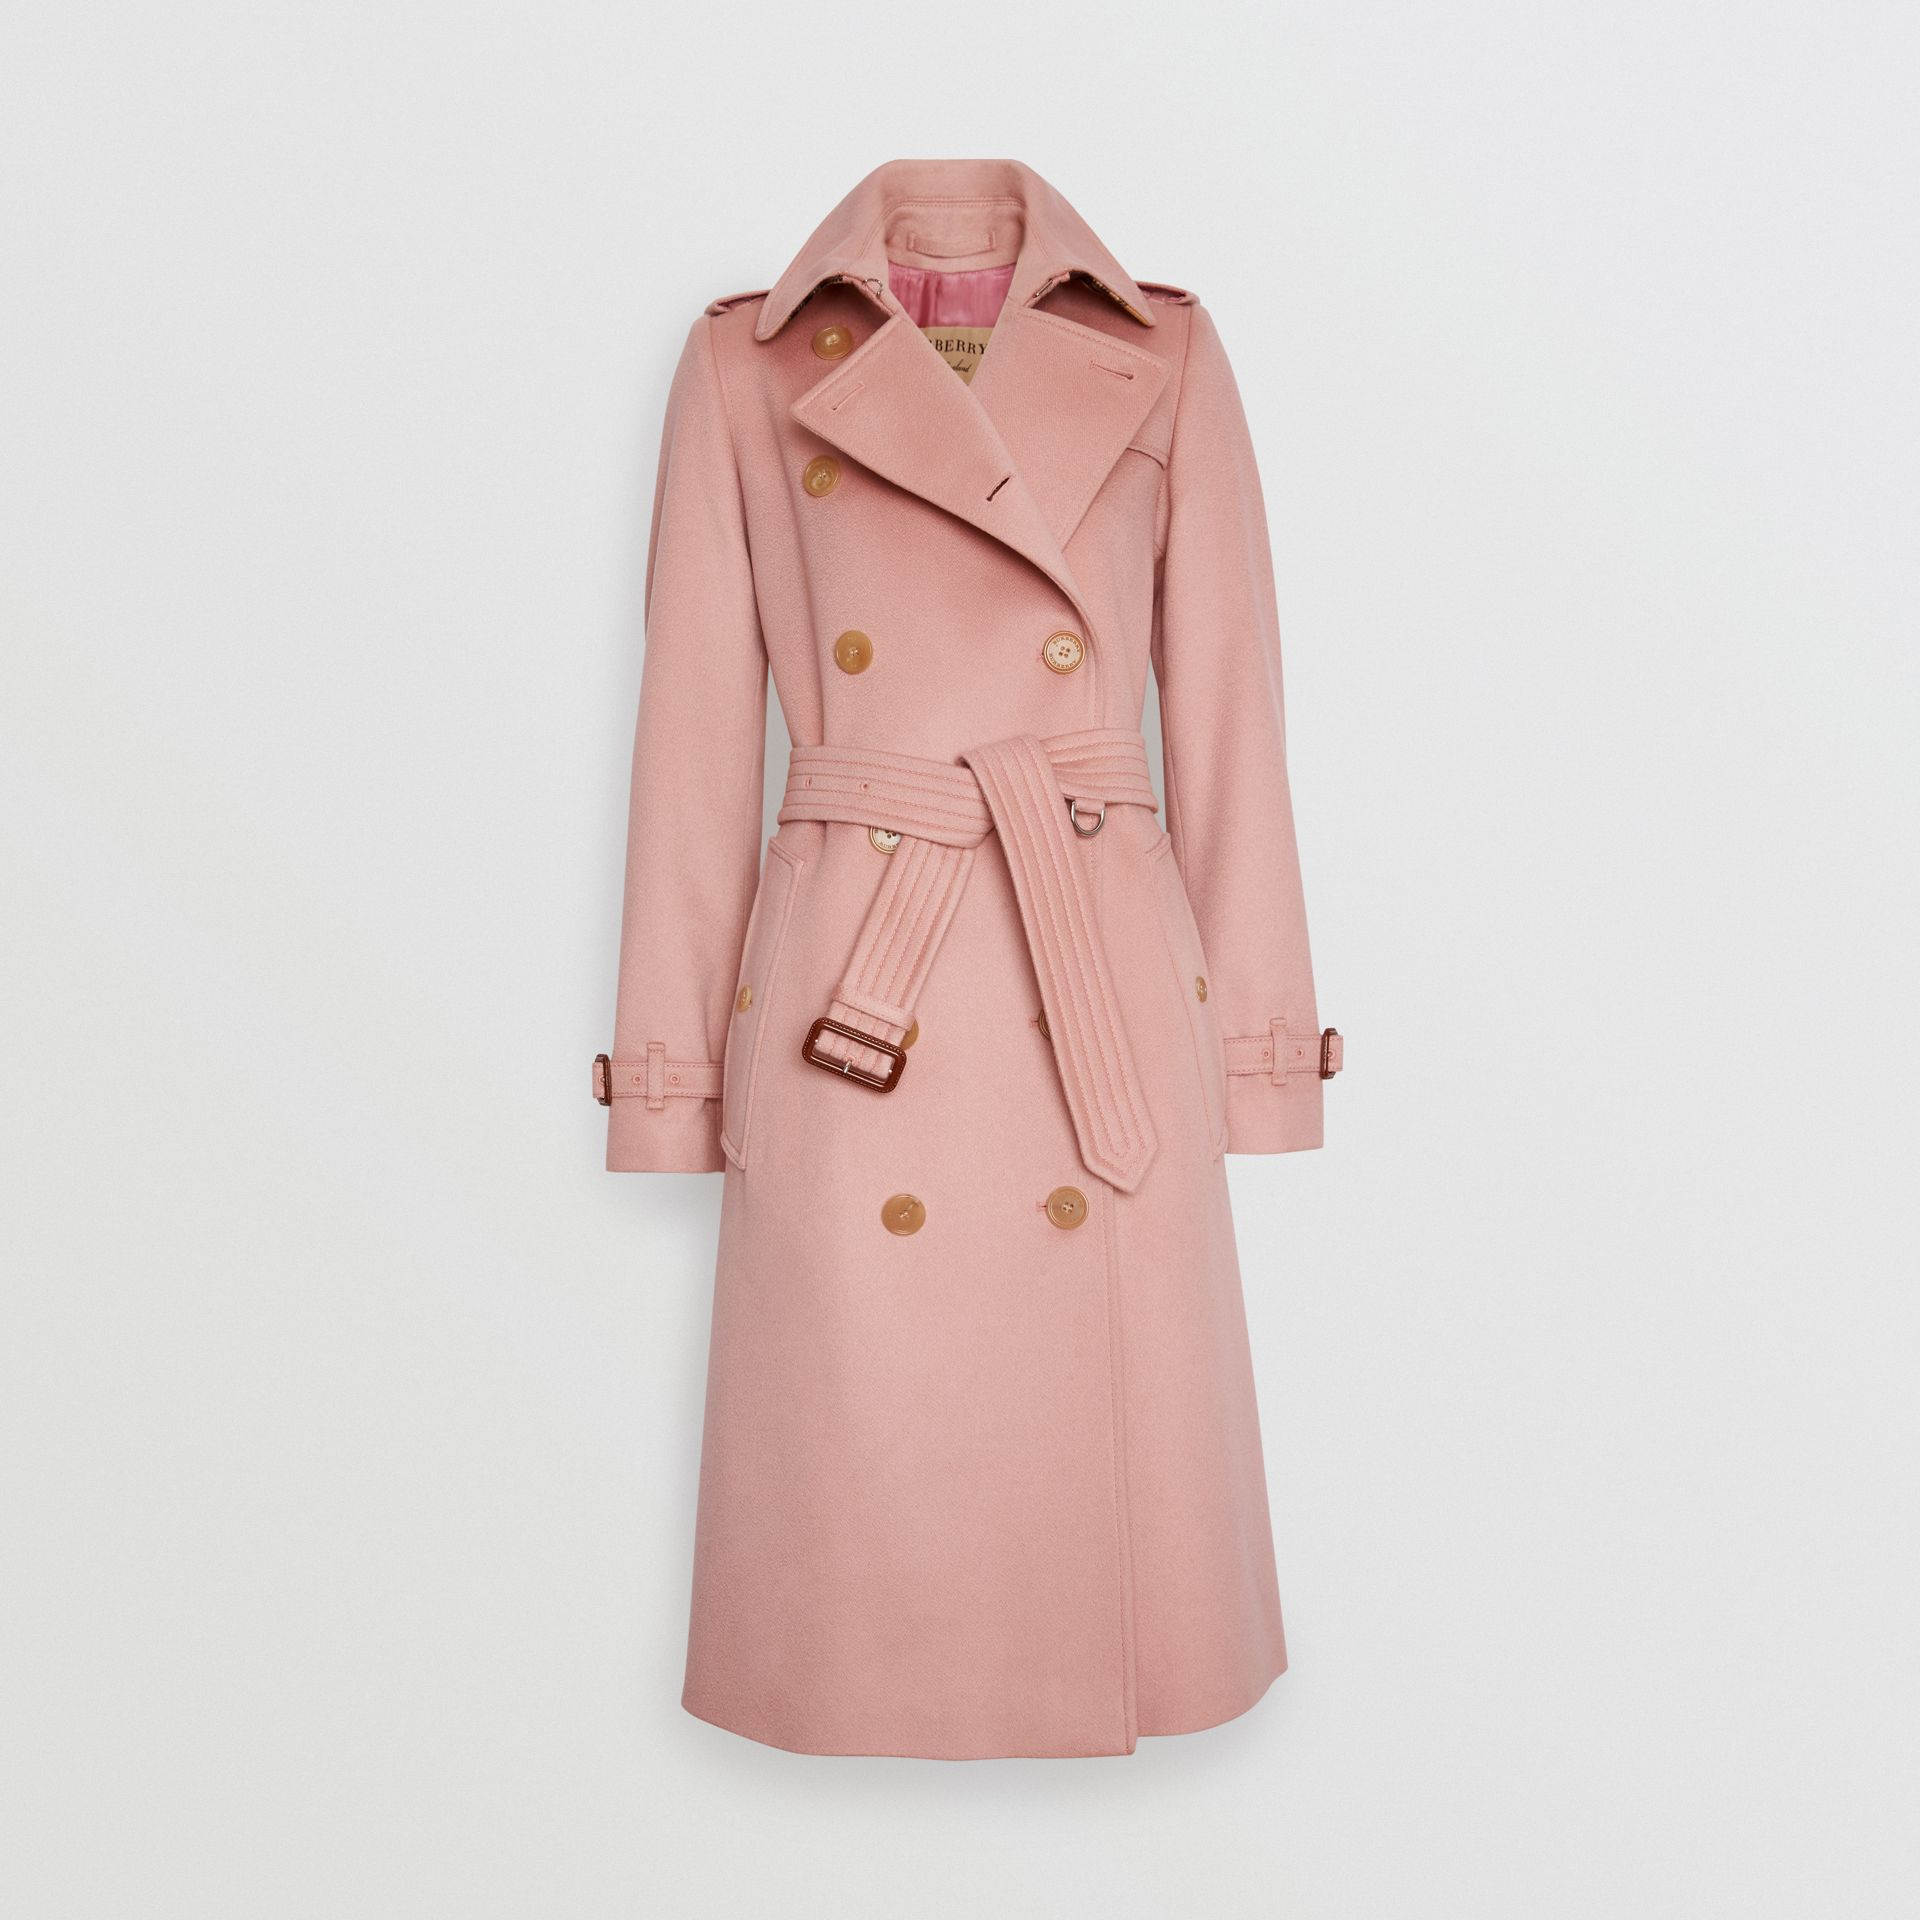 Cashmere Trench Coat in Chalk Pink - Women | Burberry United States - gallery image 3